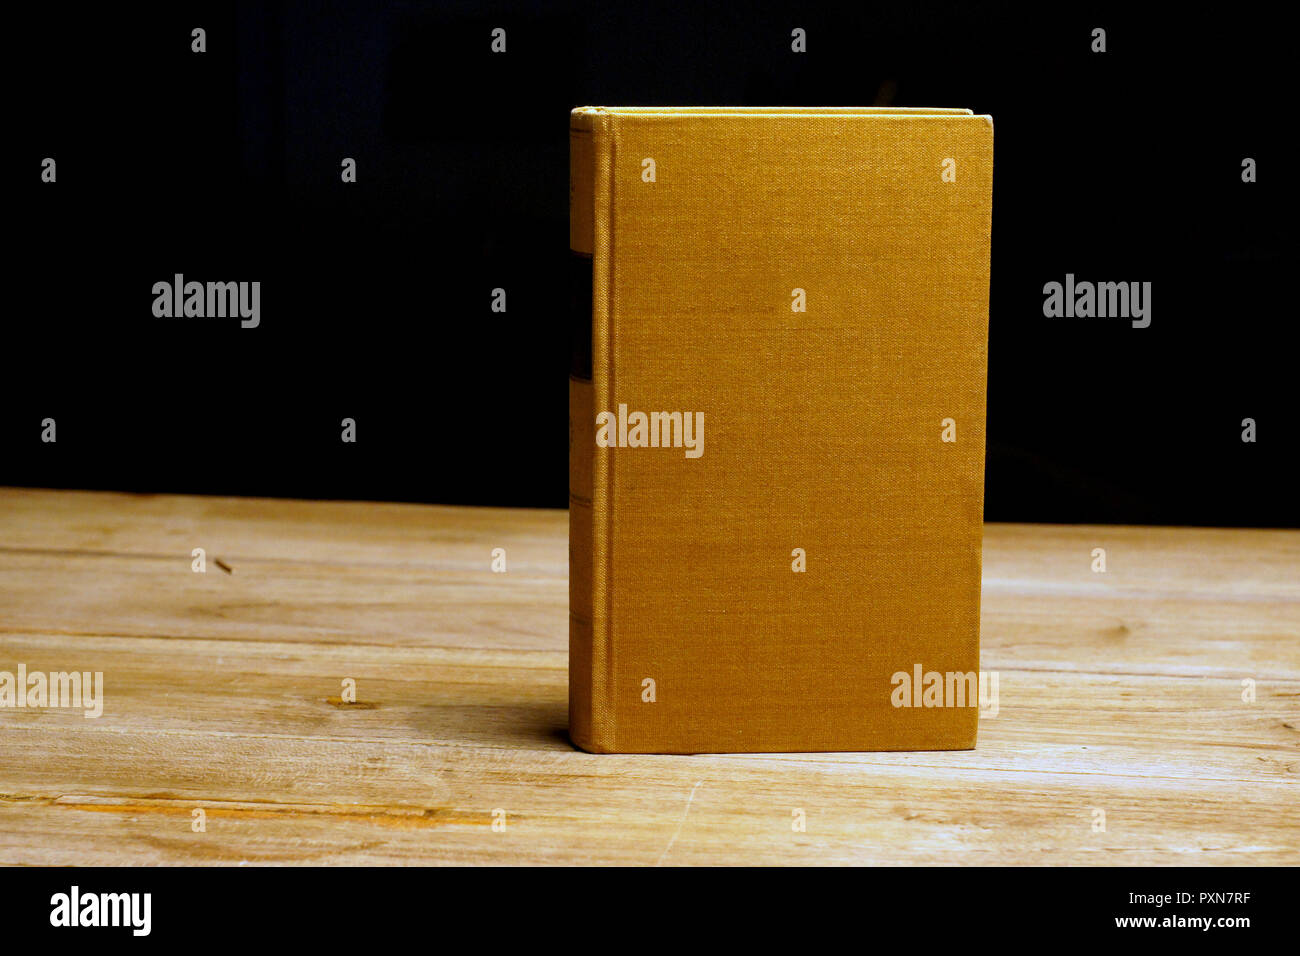 brown old hard covered book at wooden table - Stock Image